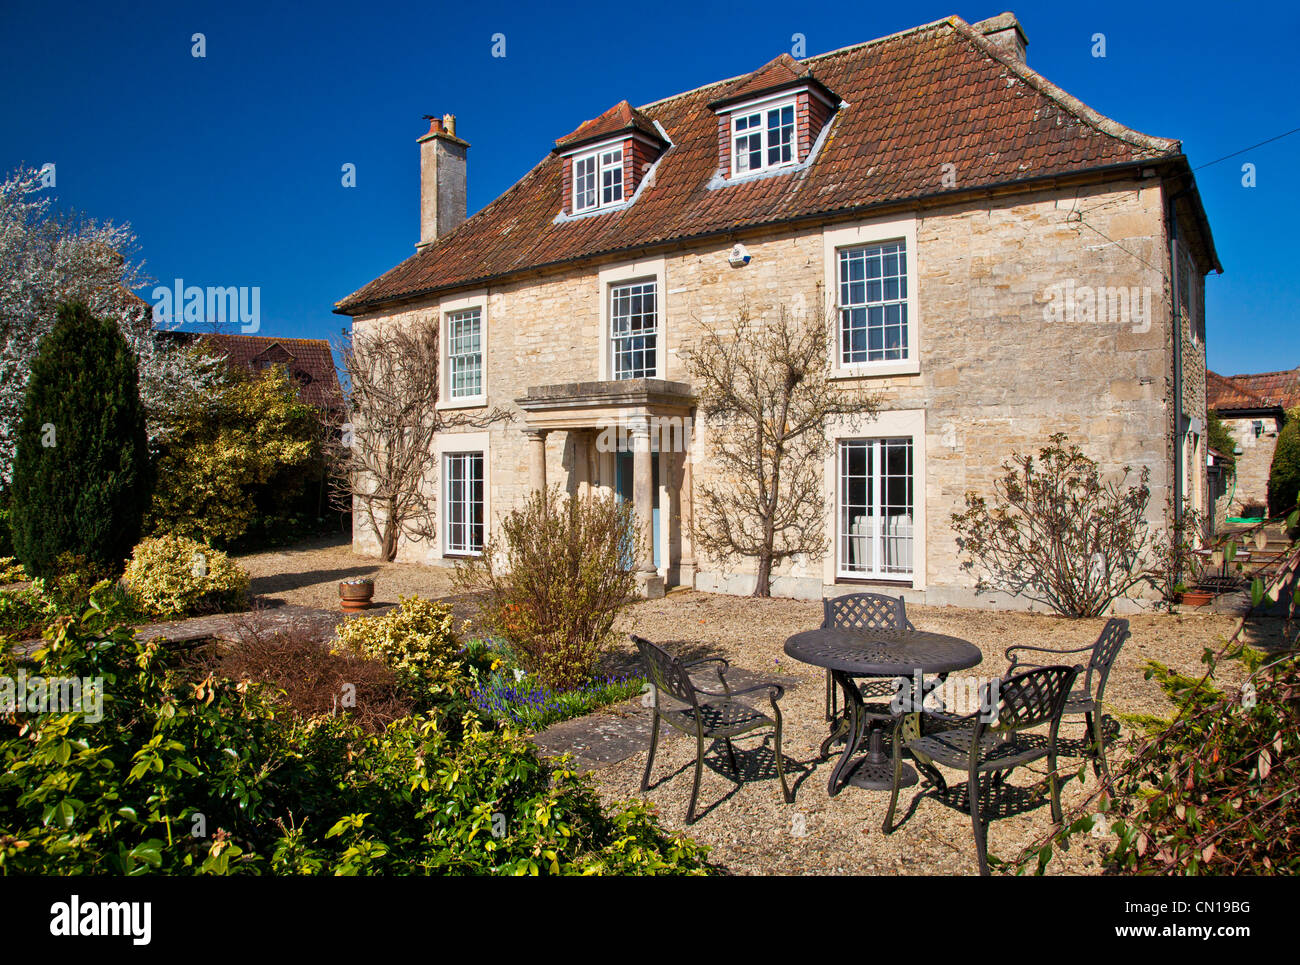 Typical 18th Century Manor House In A Rural English